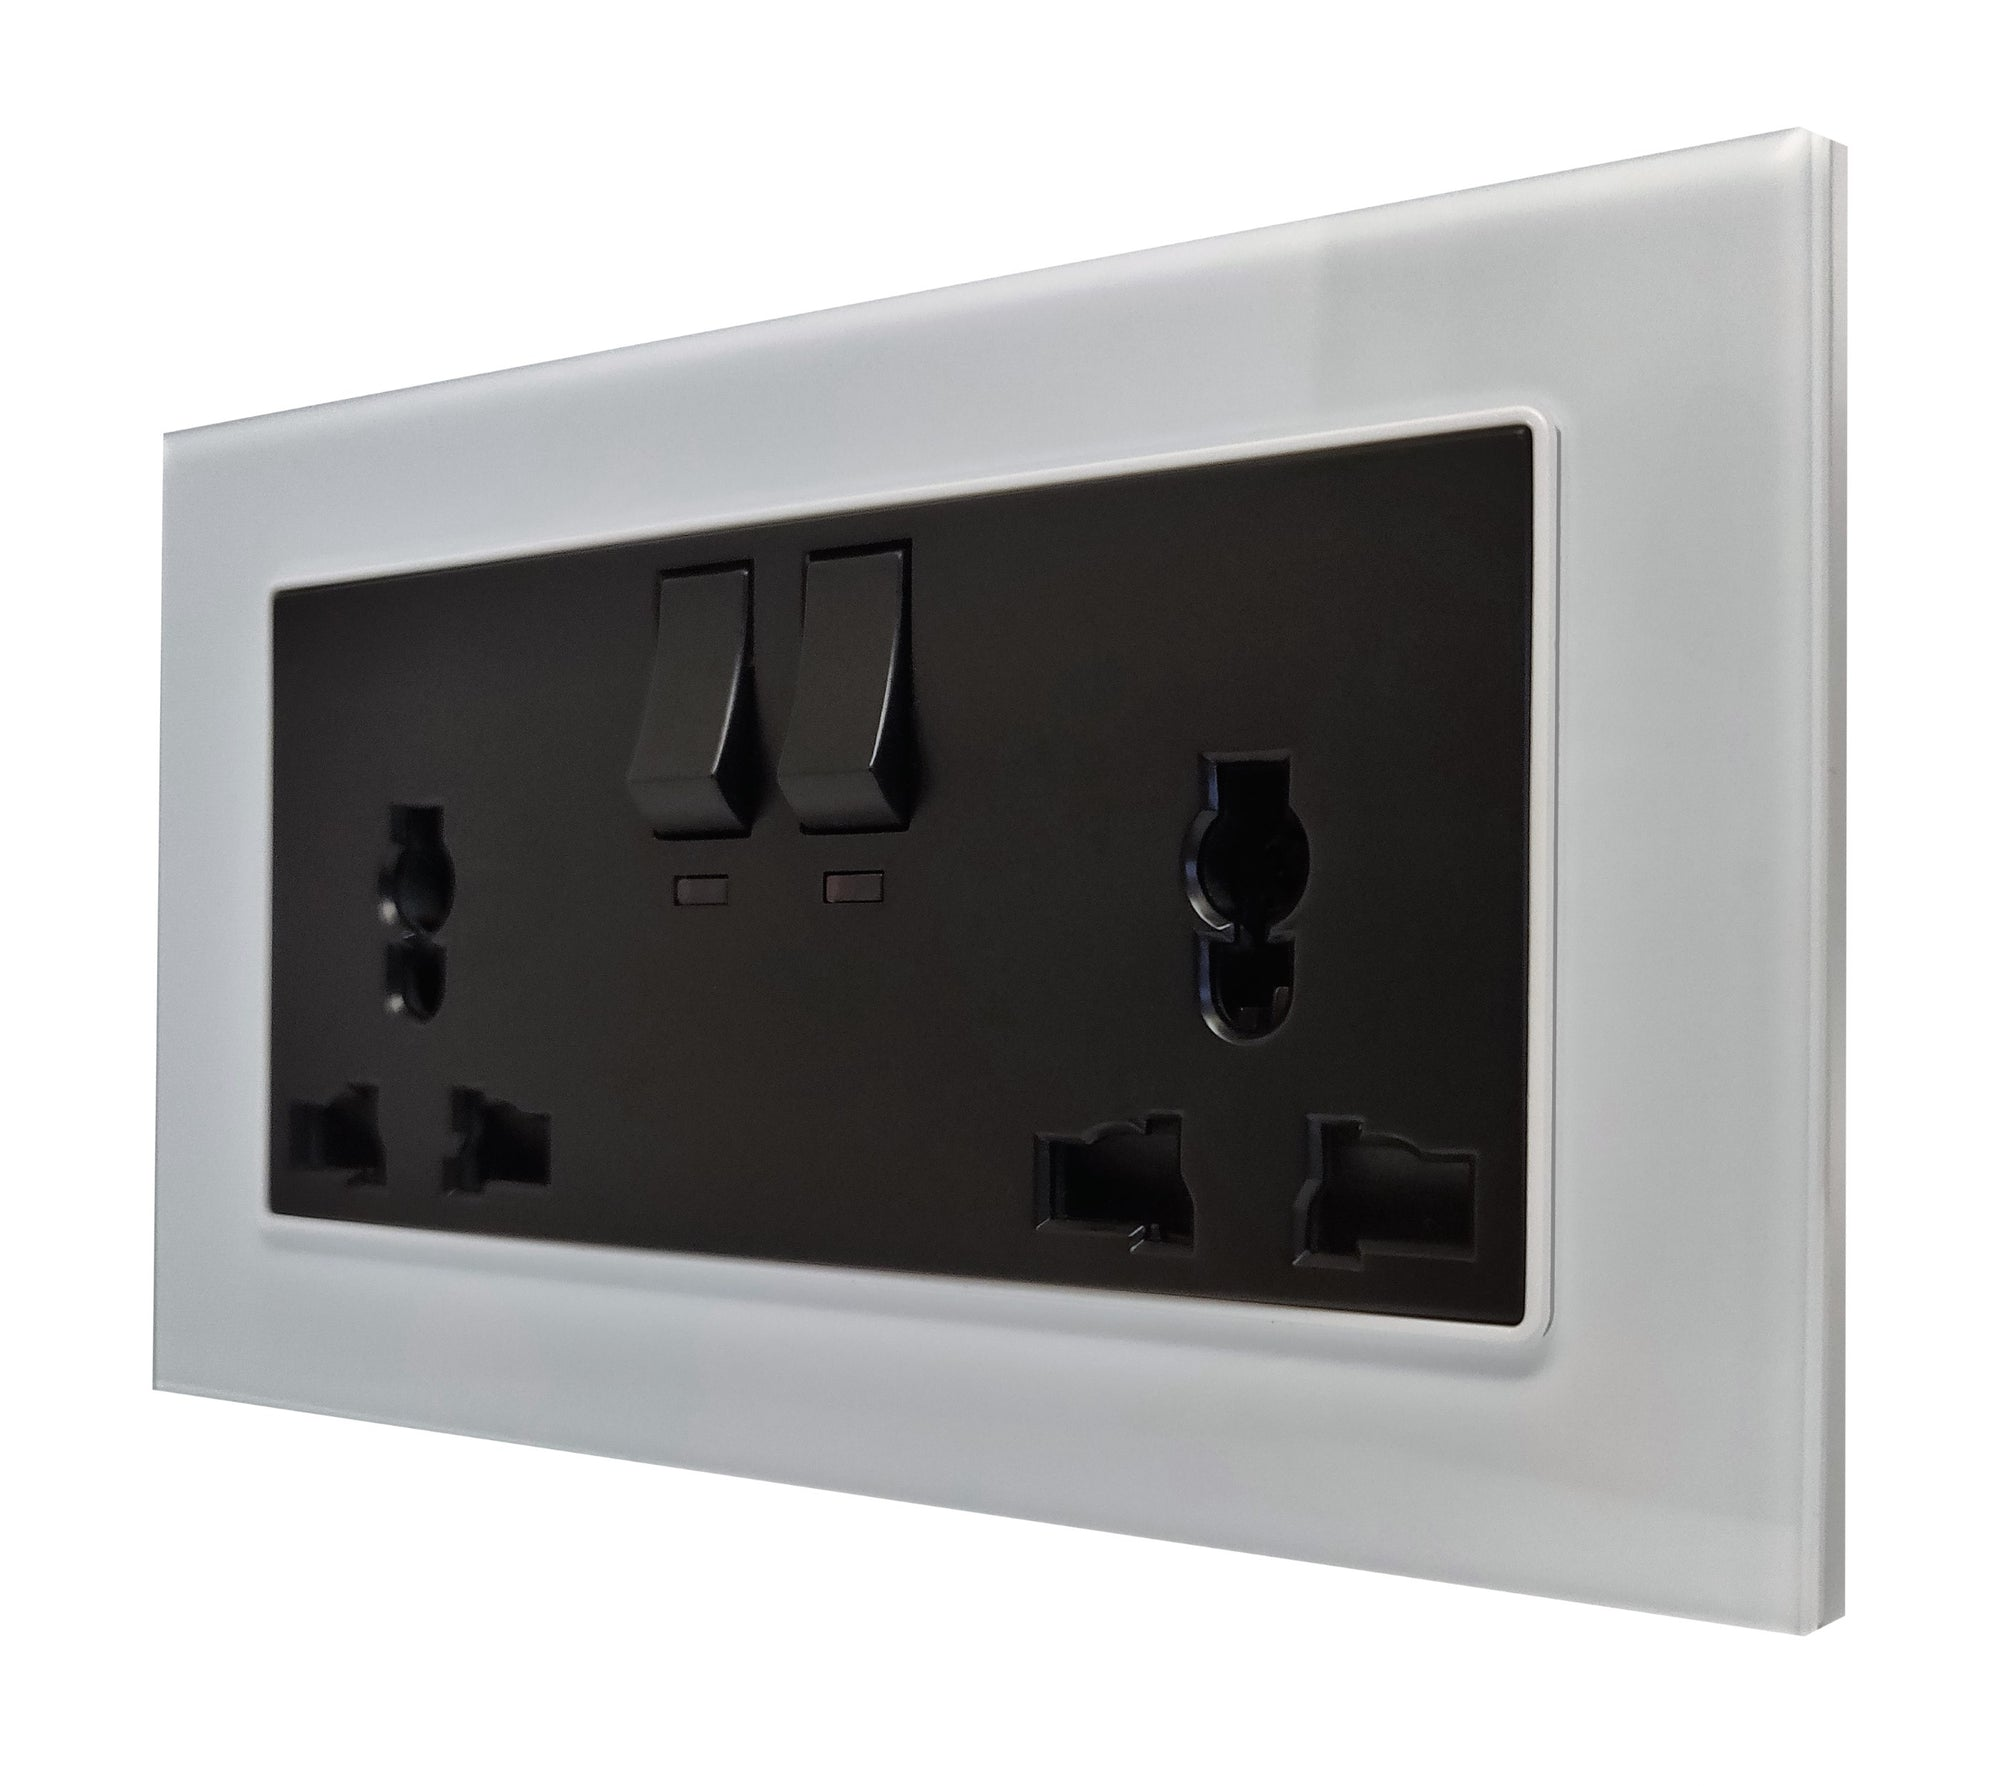 Double Universal Multi-Function AC Wall Power Socket in White Glass Frame & Black Centre